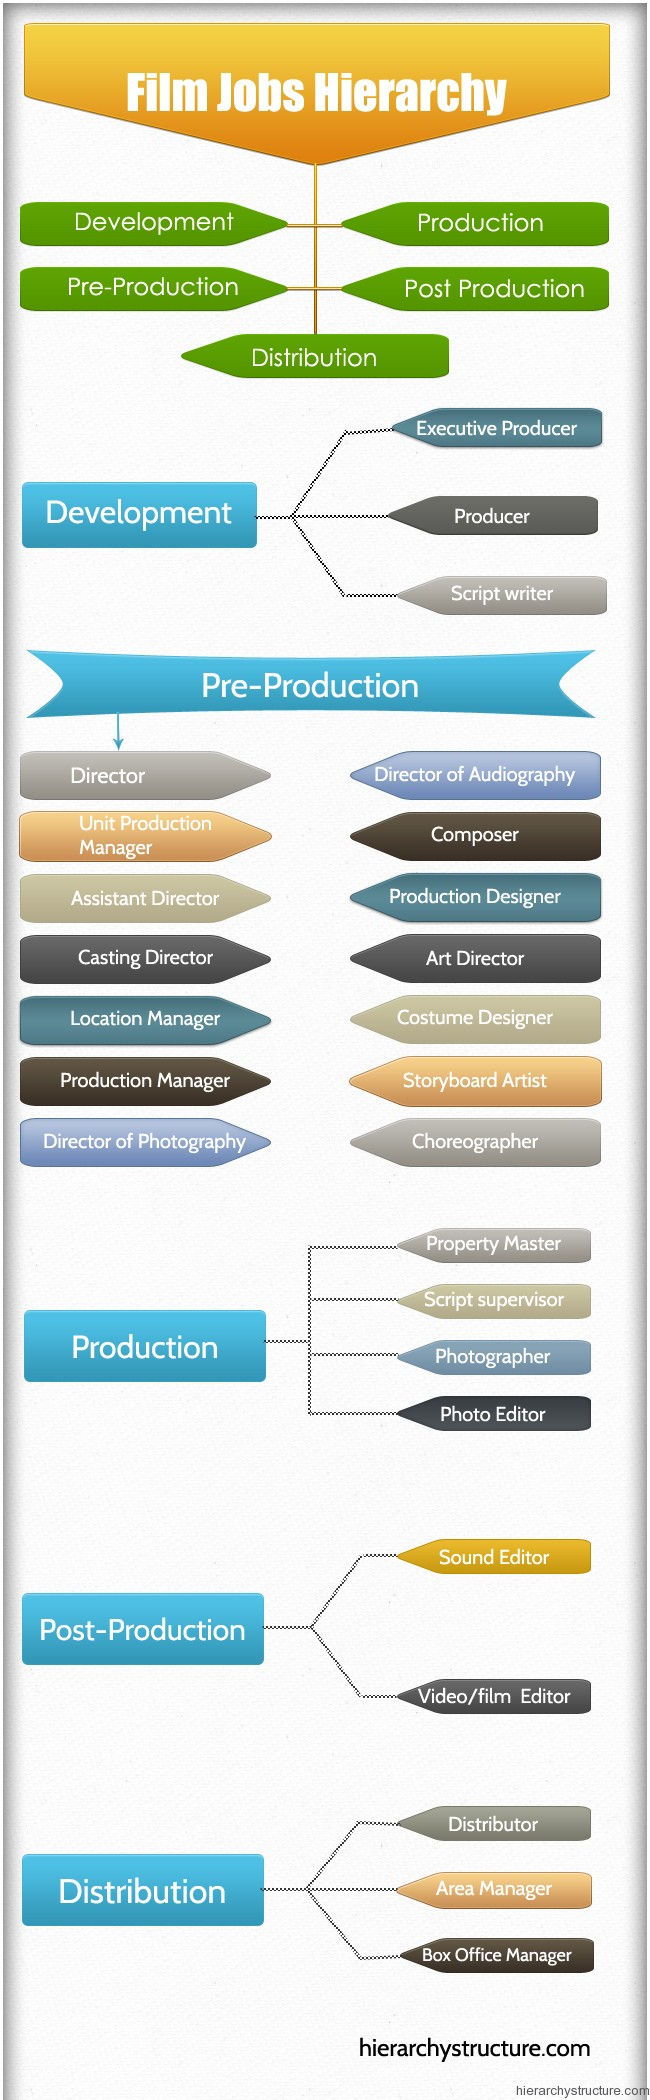 Film Jobs Hierarchy